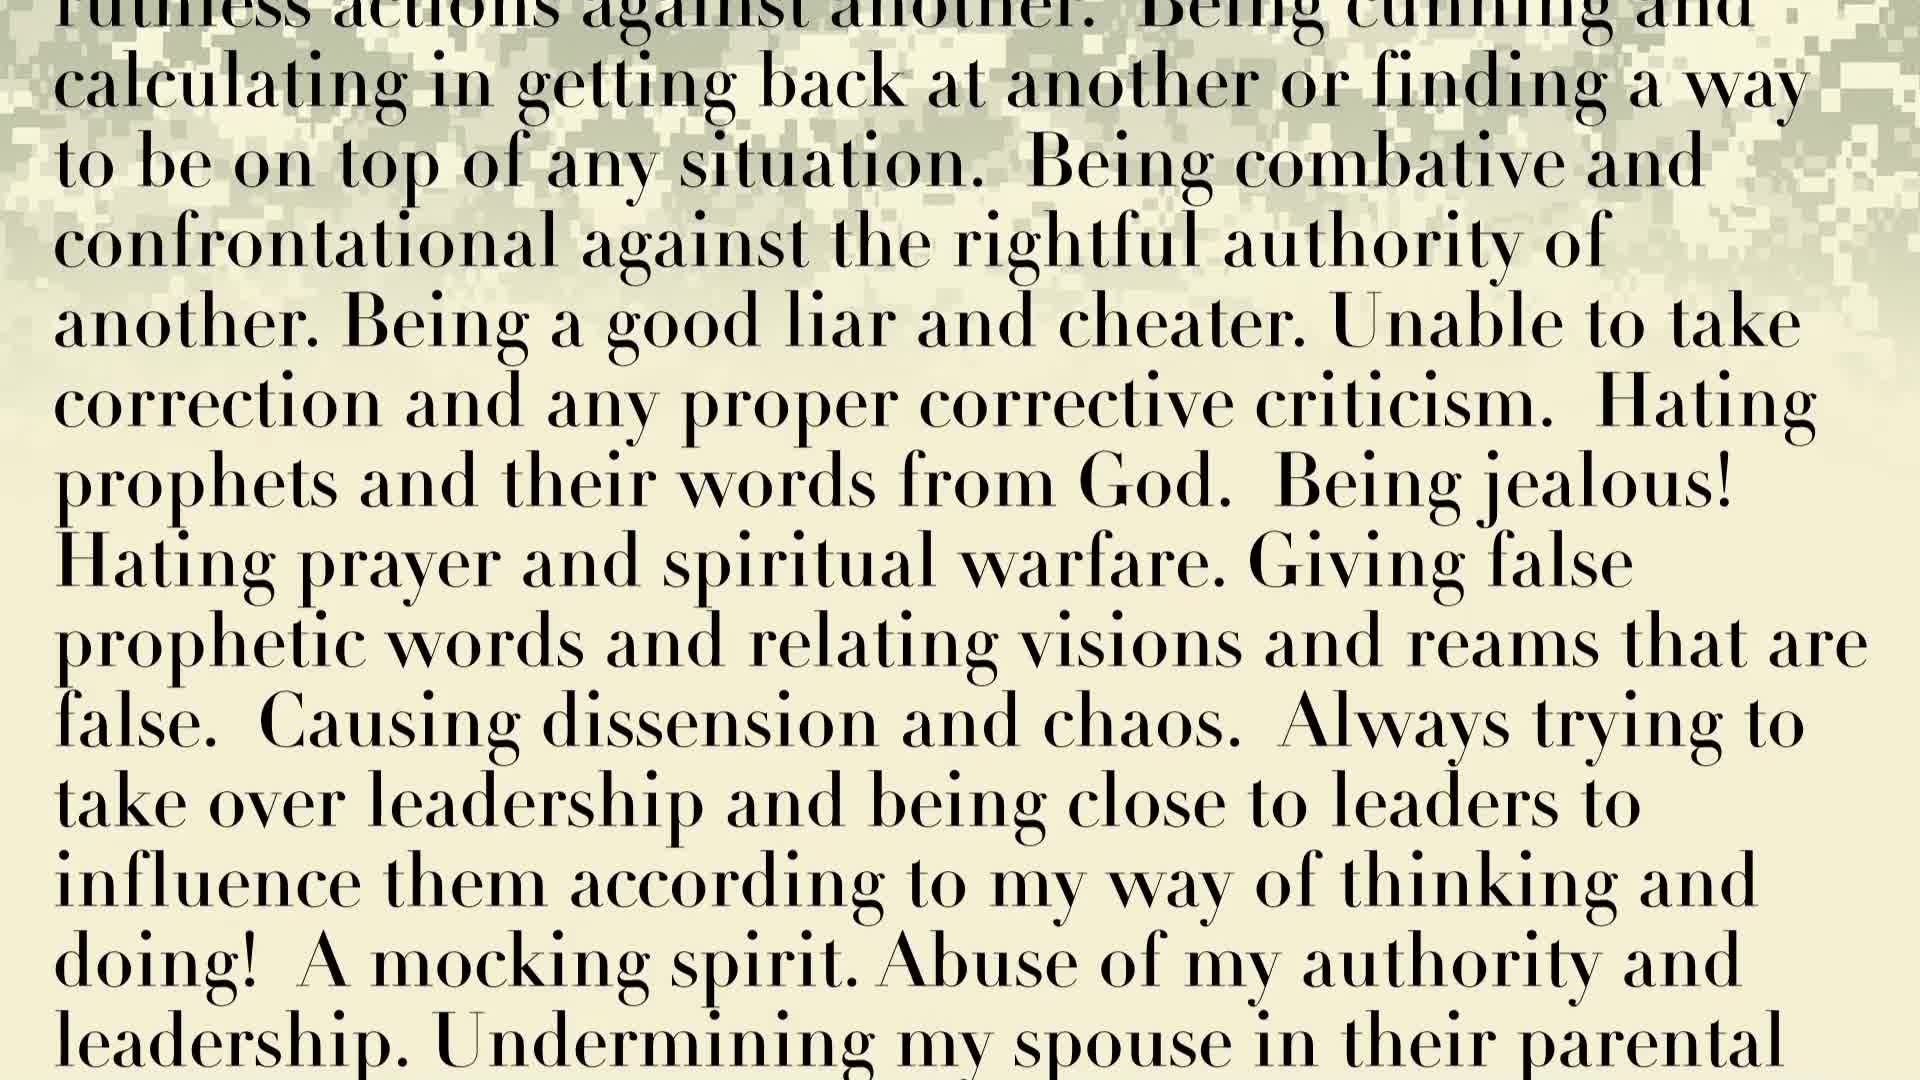 PRAYER FOCUS: RENUCIATION PRAYER FO SPIRIT OF JEZEBEL IN OUR LIFE AND THE LIFE OF THE NATION!